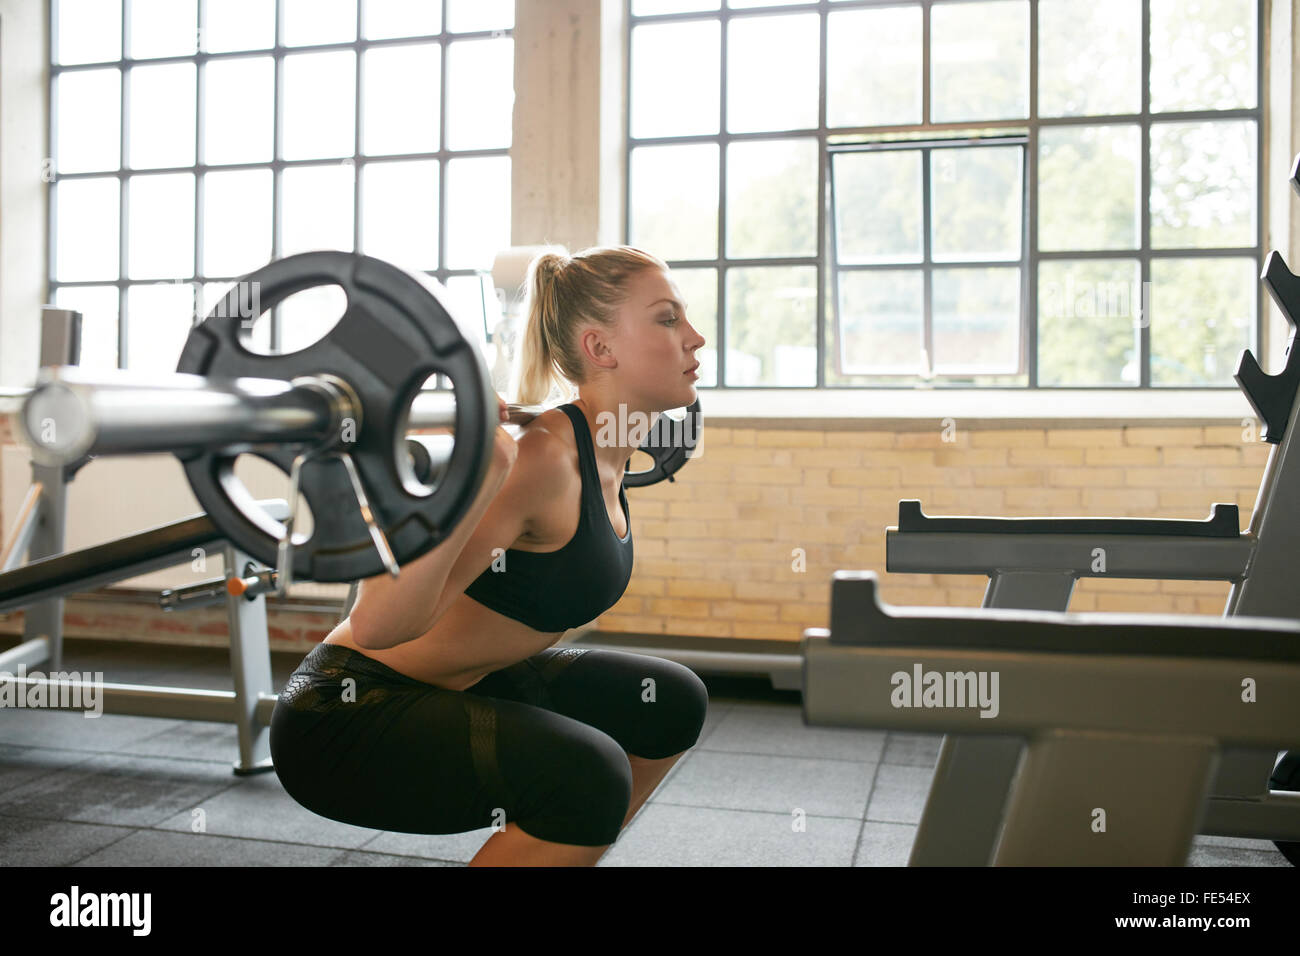 Female working out in a gym doing squats. Young woman working out using barbell with heavy weights in a fitness - Stock Image